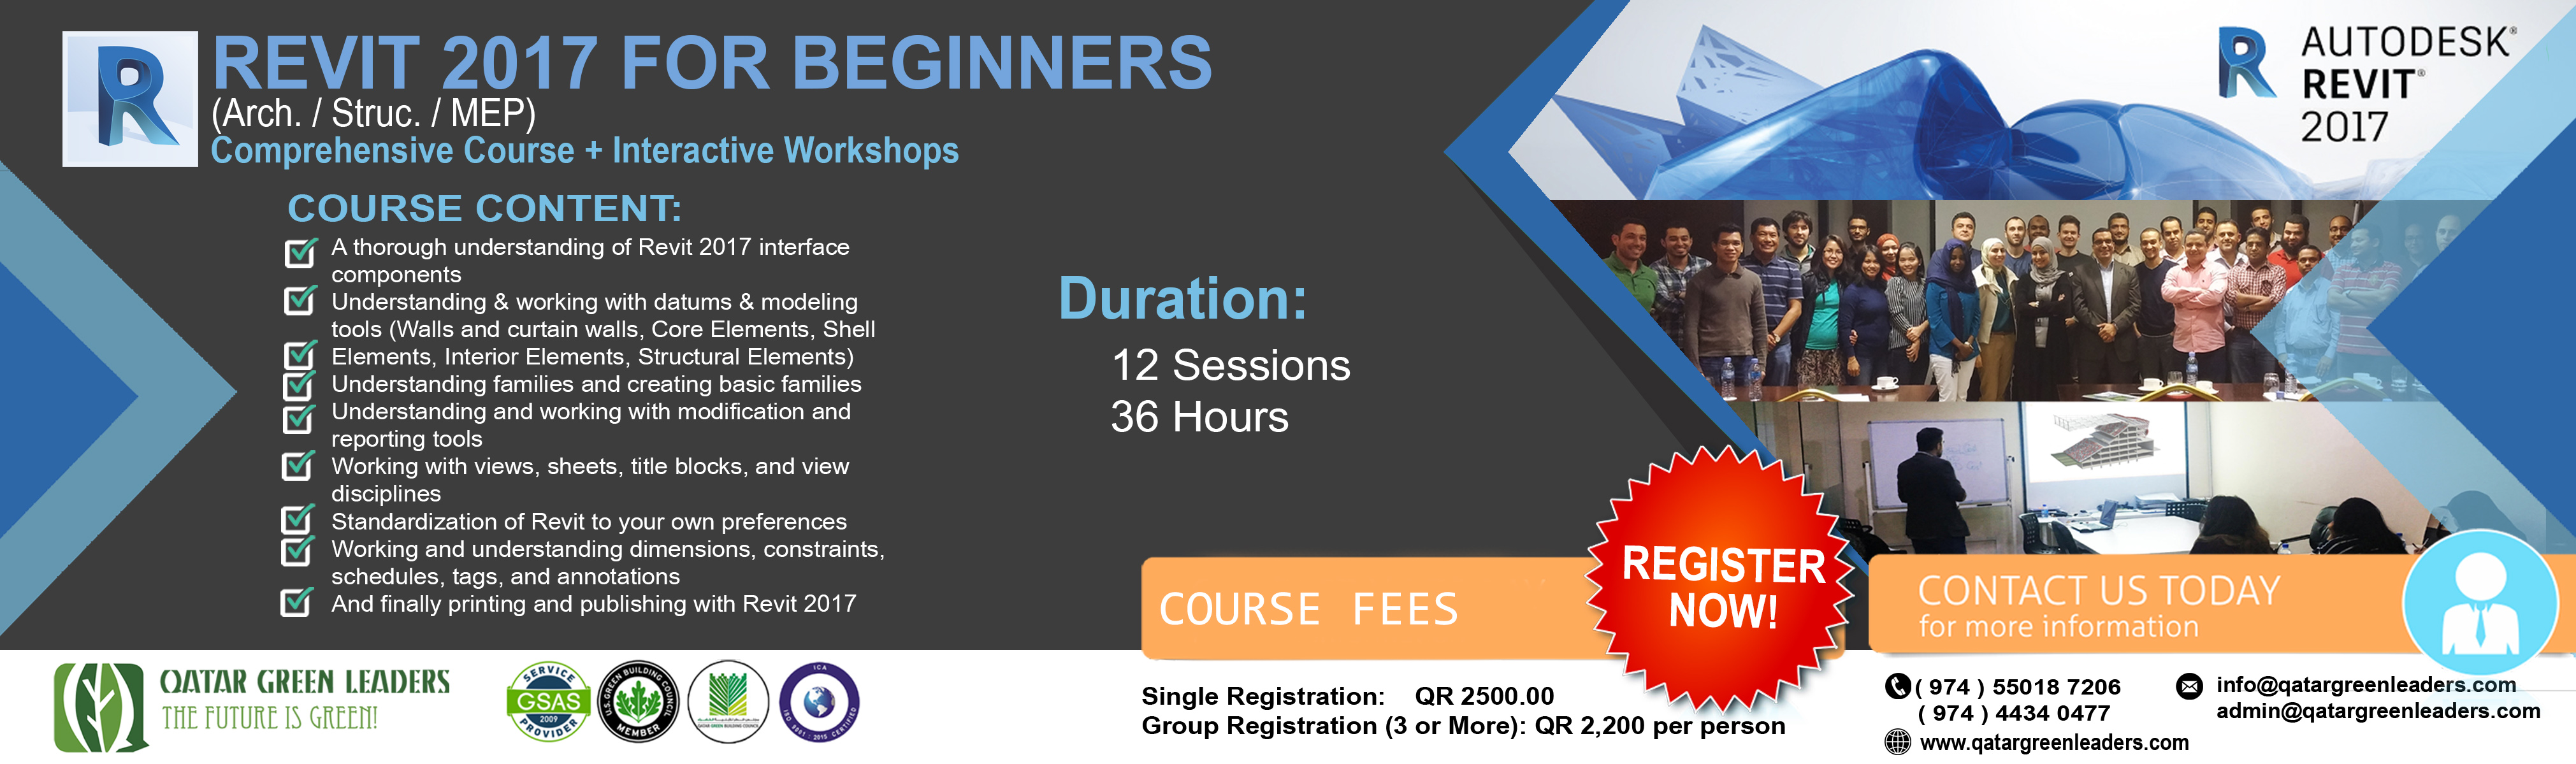 revit-beginners-course